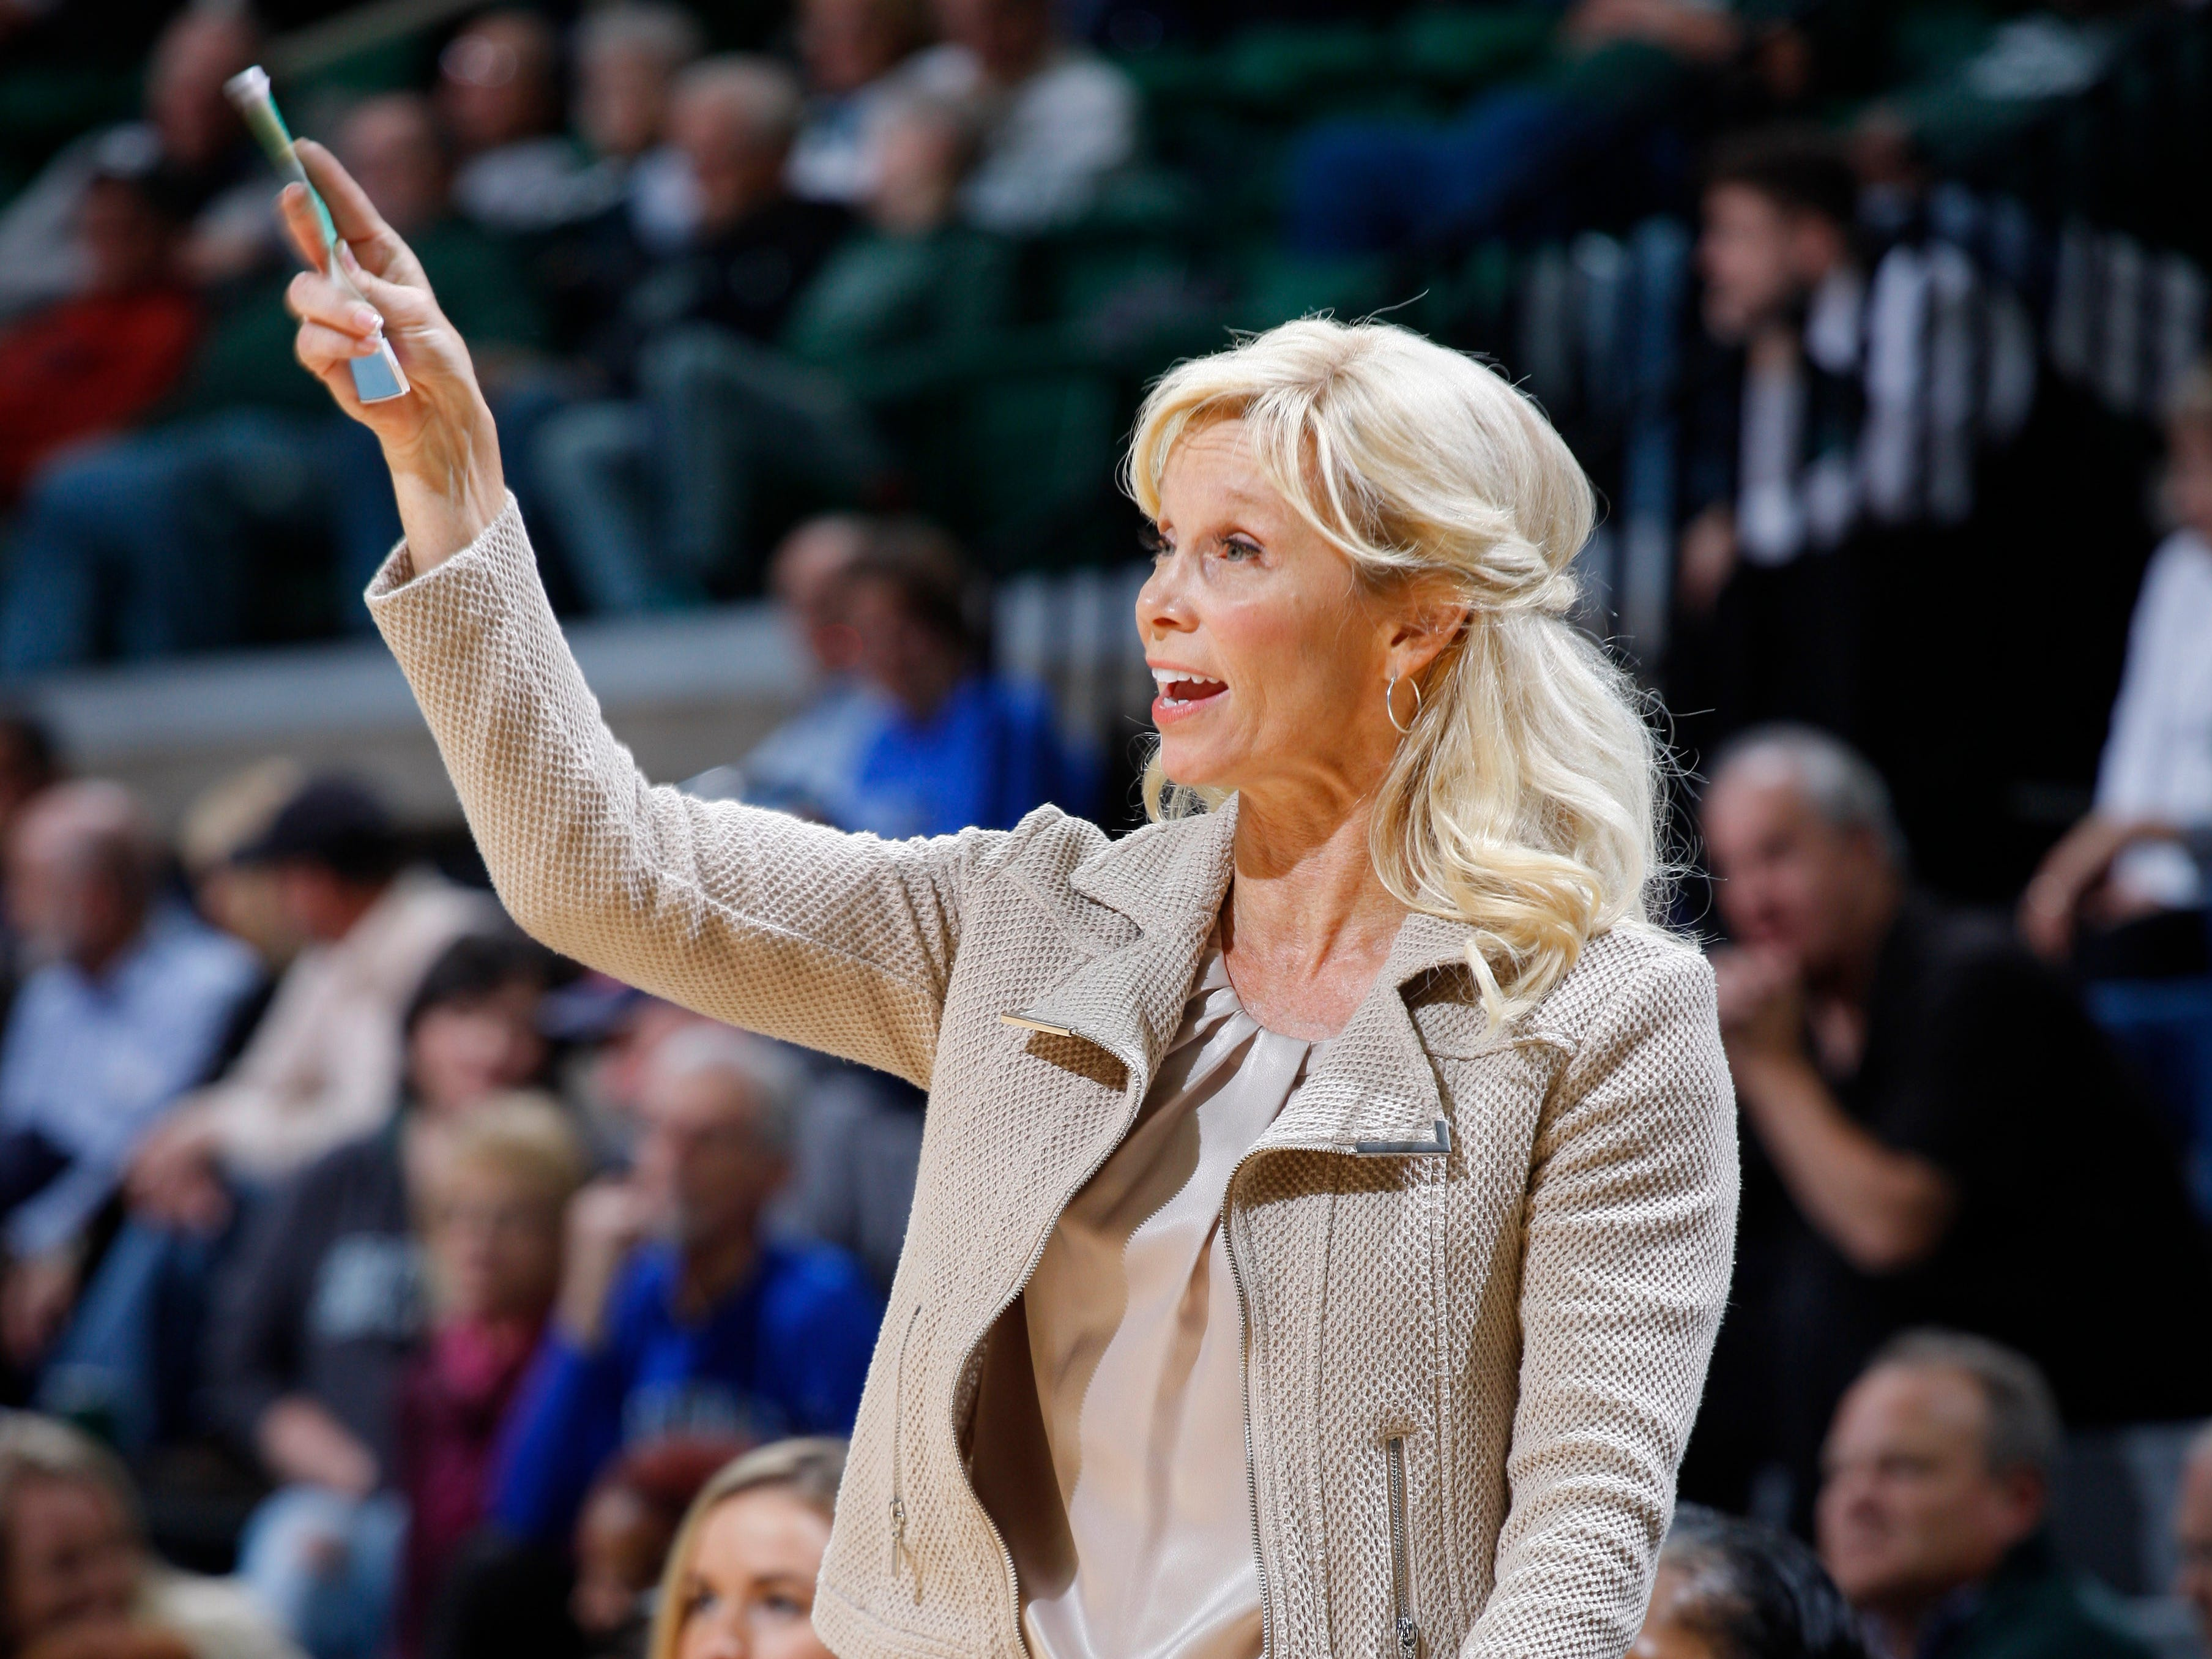 Michigan State coach Suzy Merchant gives instructions against Hillsdale, Thursday, Nov. 1, 2018, in East Lansing, Mich.